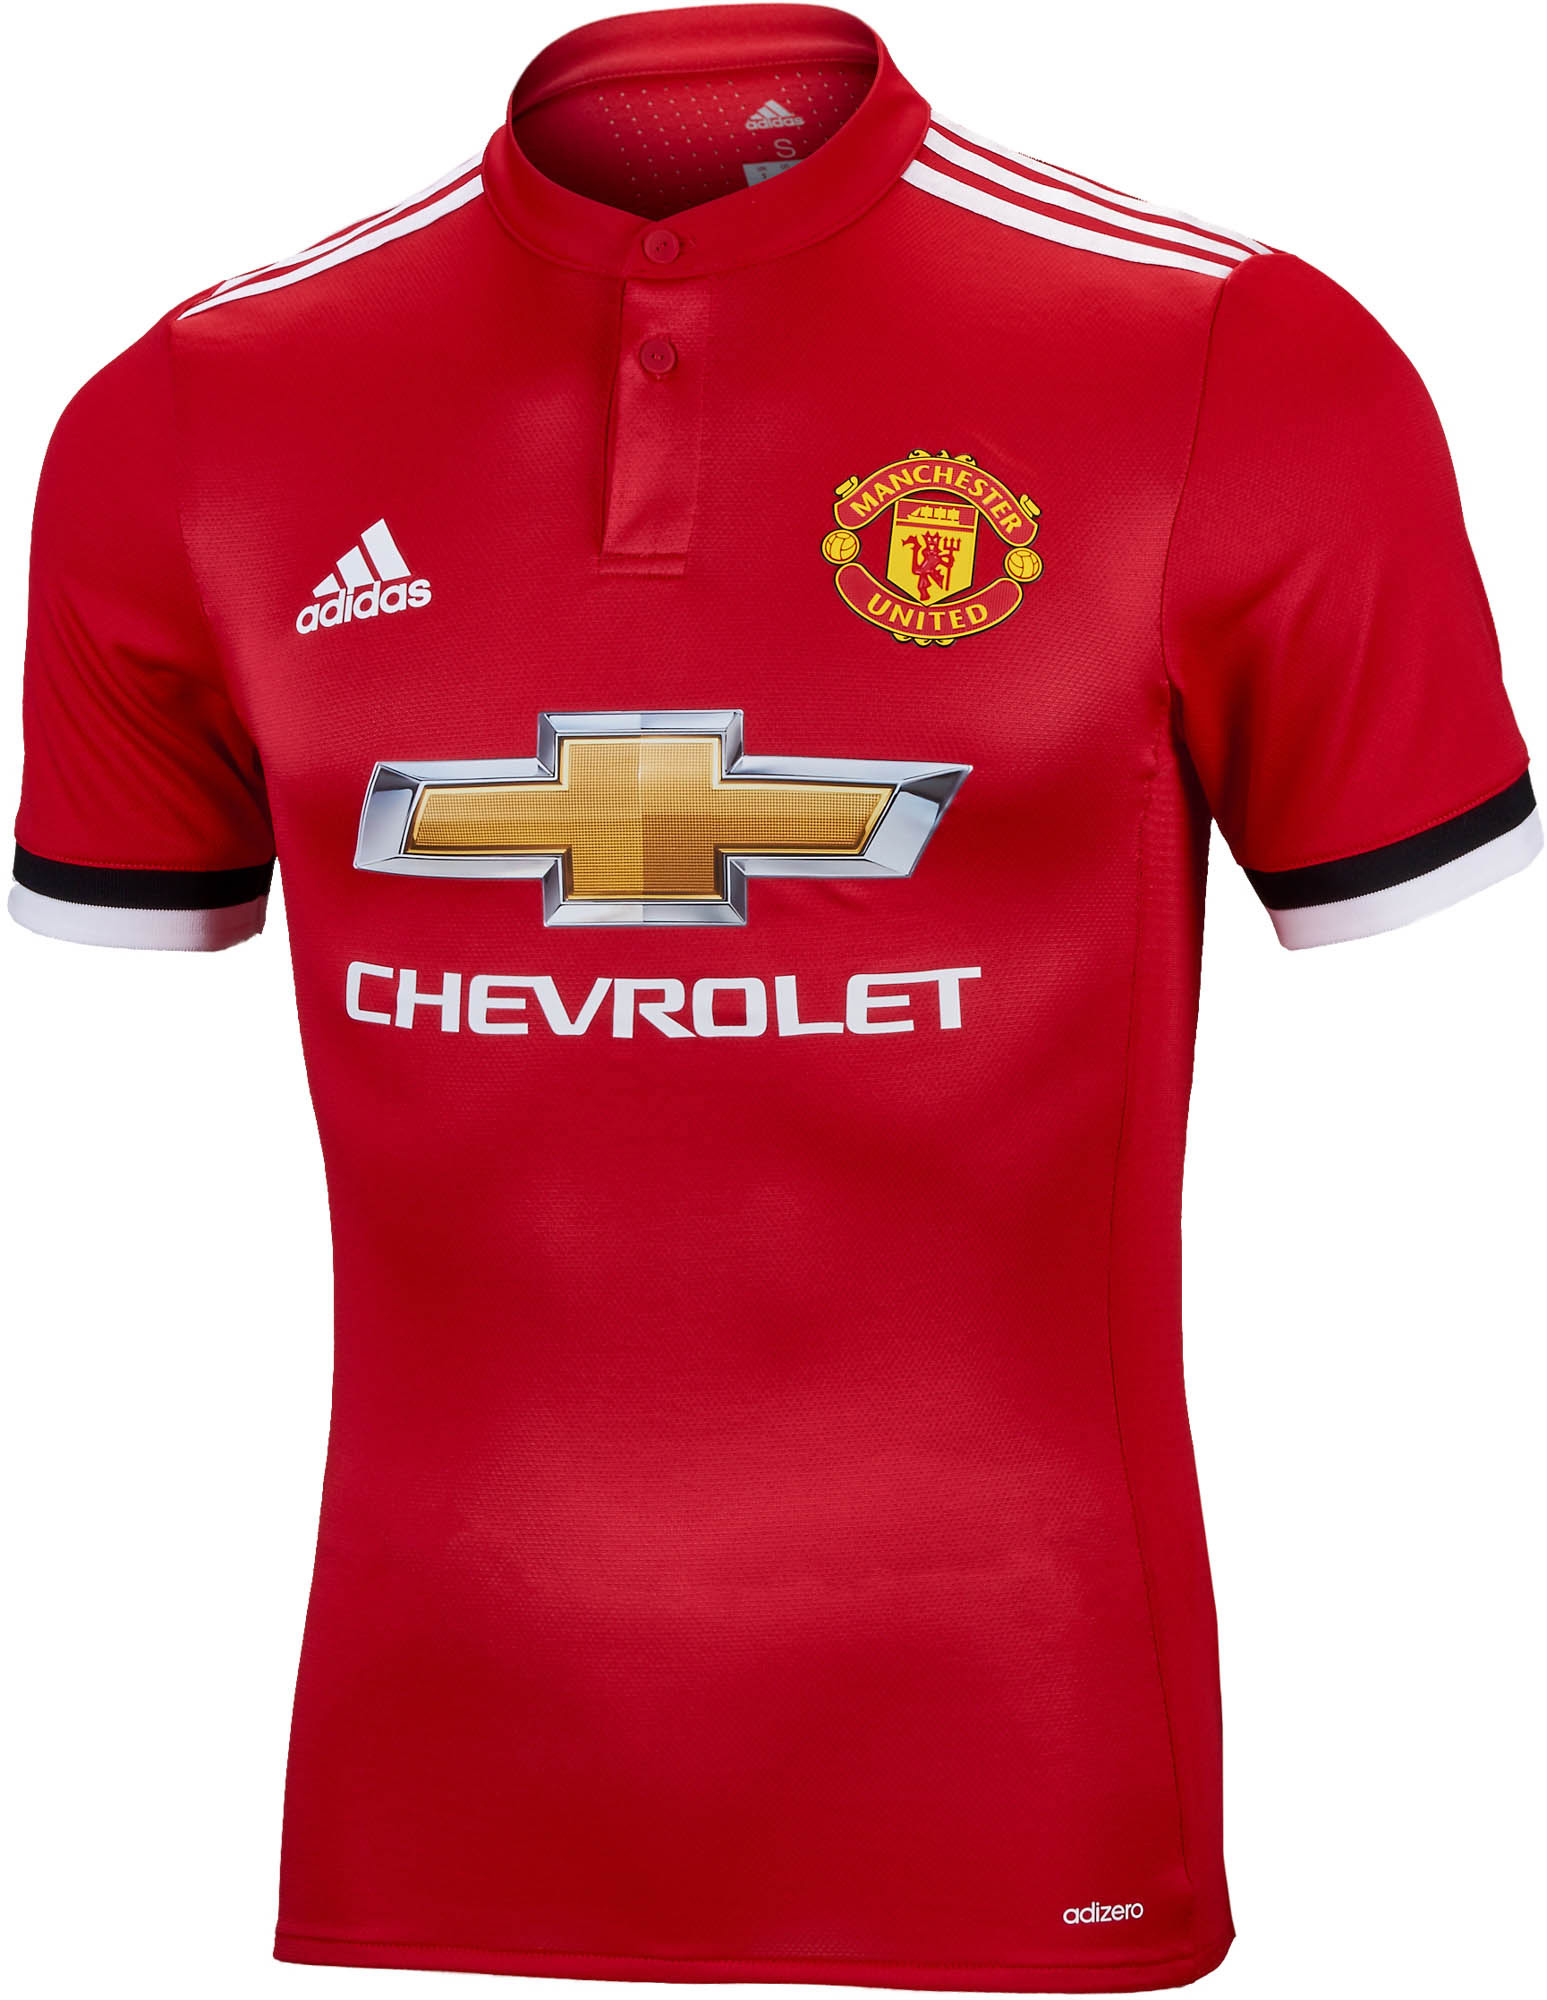 771c34a6 2017/18 adidas Manchester United Authentic Home Jersey - Soccer Master